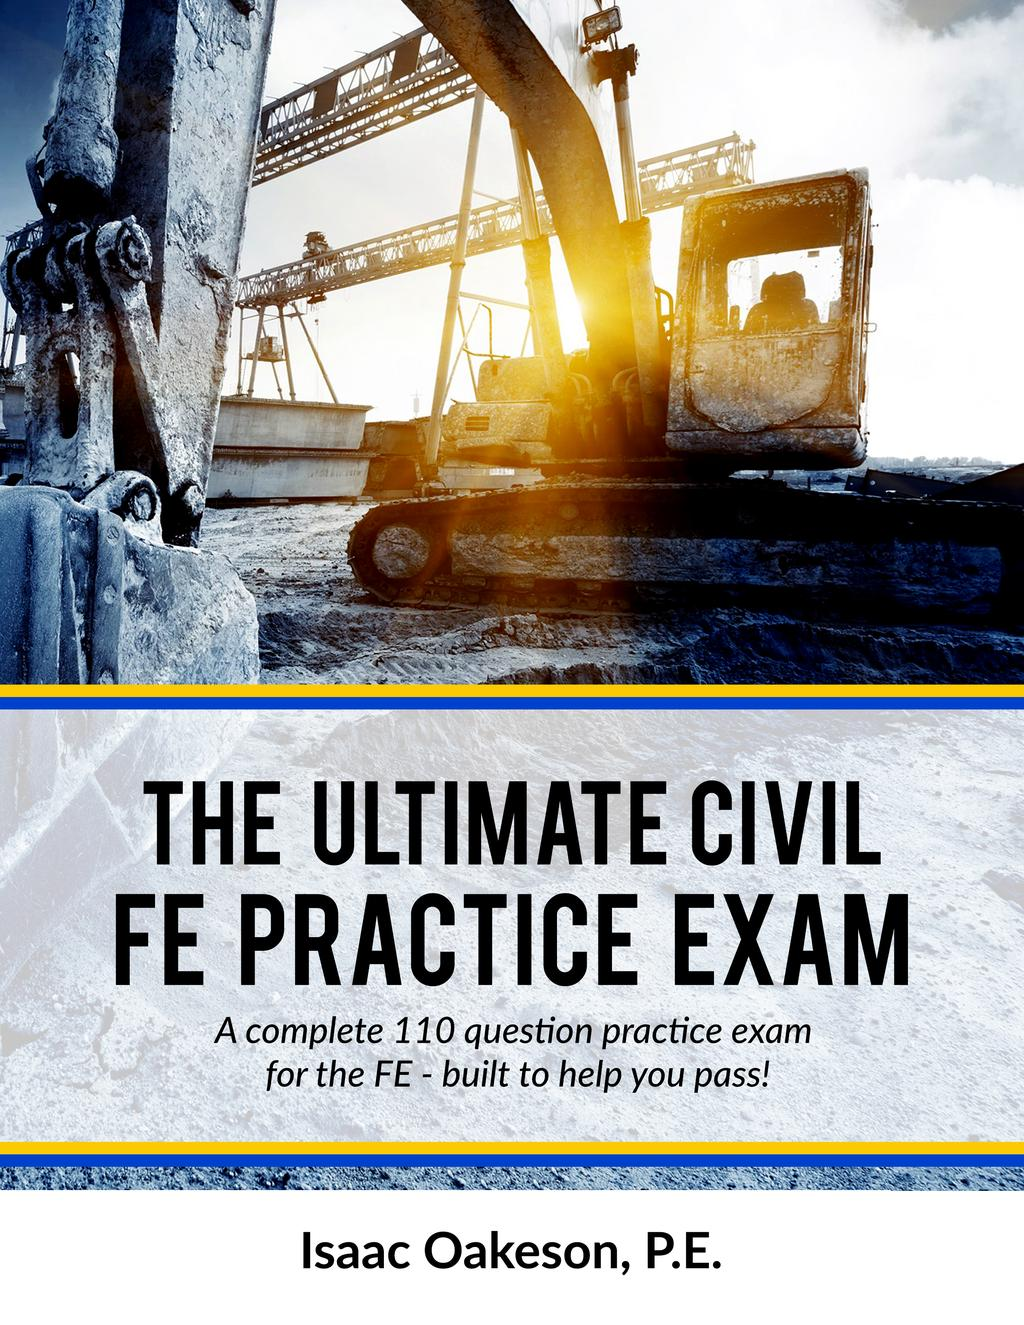 Fe Civil Practice Exam Pdf